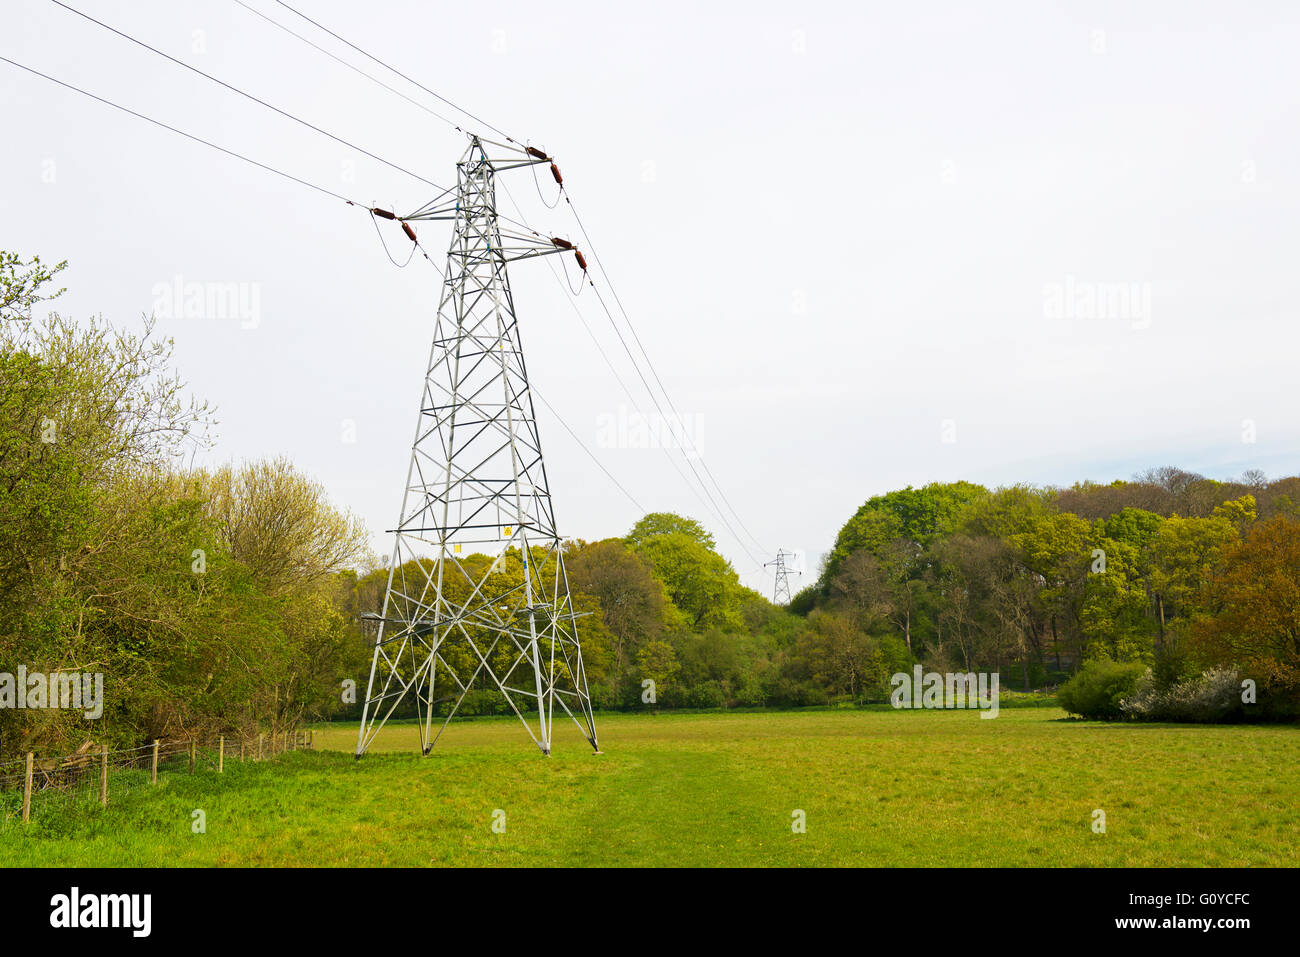 Electricity pylons spanning fields near Flatford, Dedham Vale, Essex, England UK - Stock Image